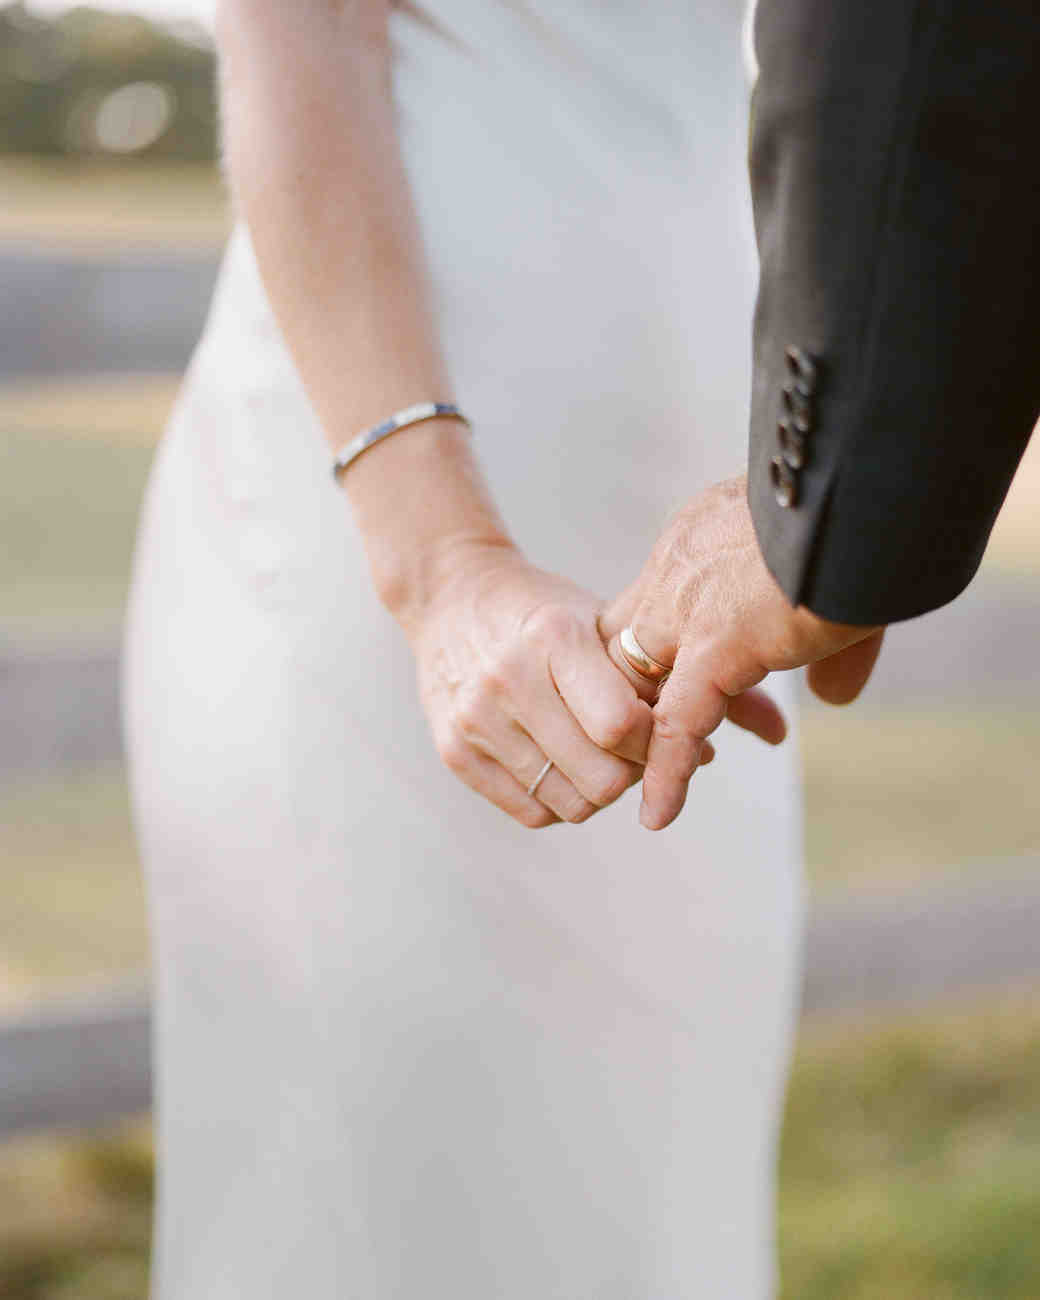 10 Tips for a Stress-Free First Year of Marriage